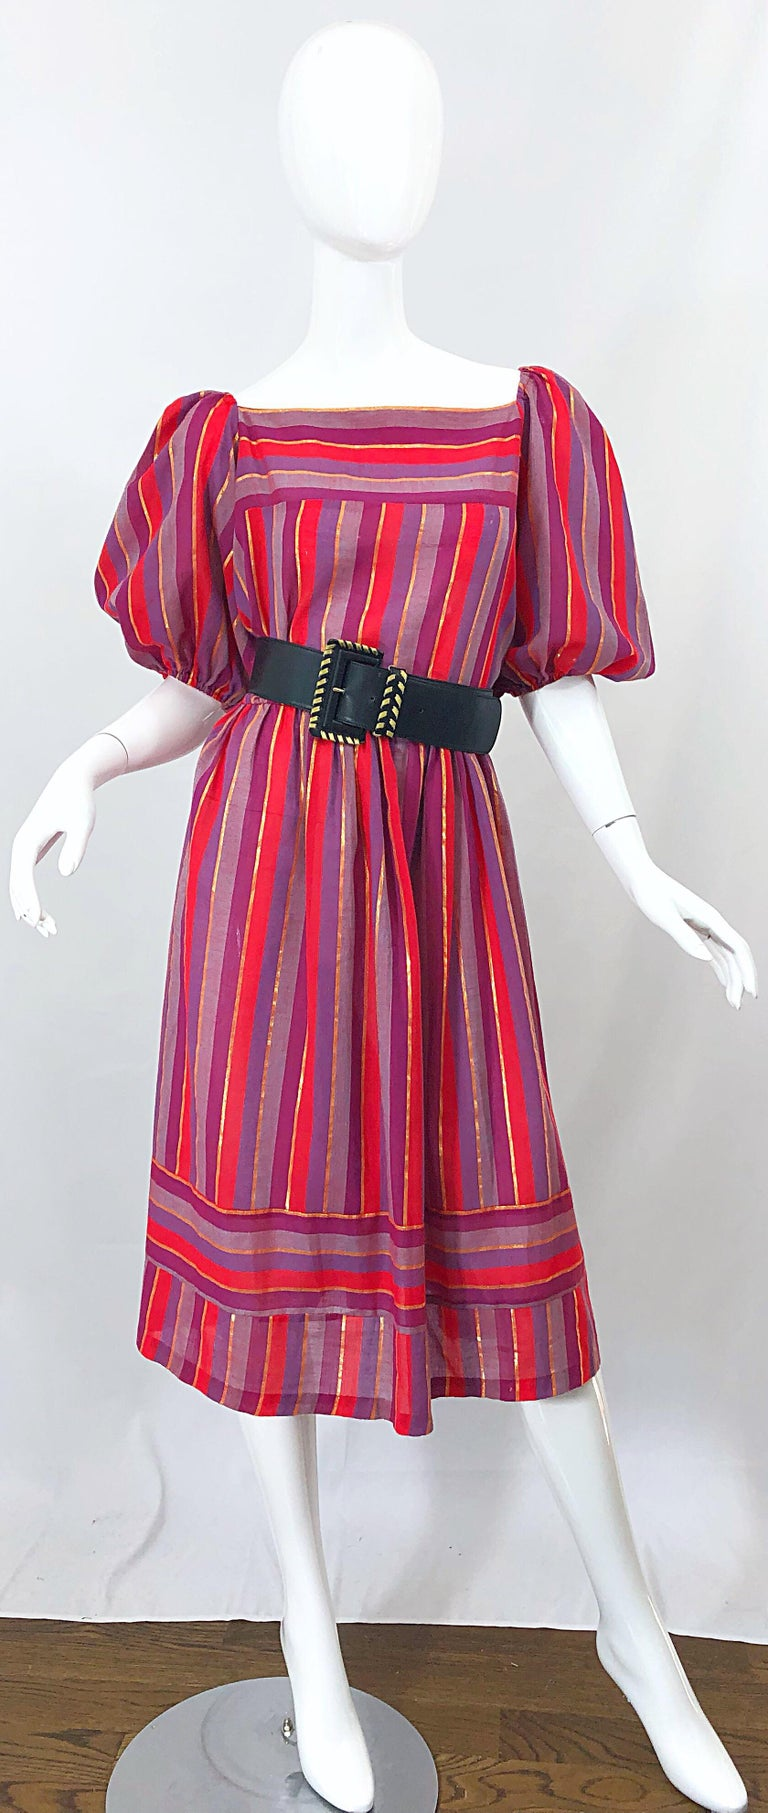 1970s Boho Chic Red + Purple + Gold Striped Cotton Voile 70s Vintage Dress In Excellent Condition For Sale In Chicago, IL